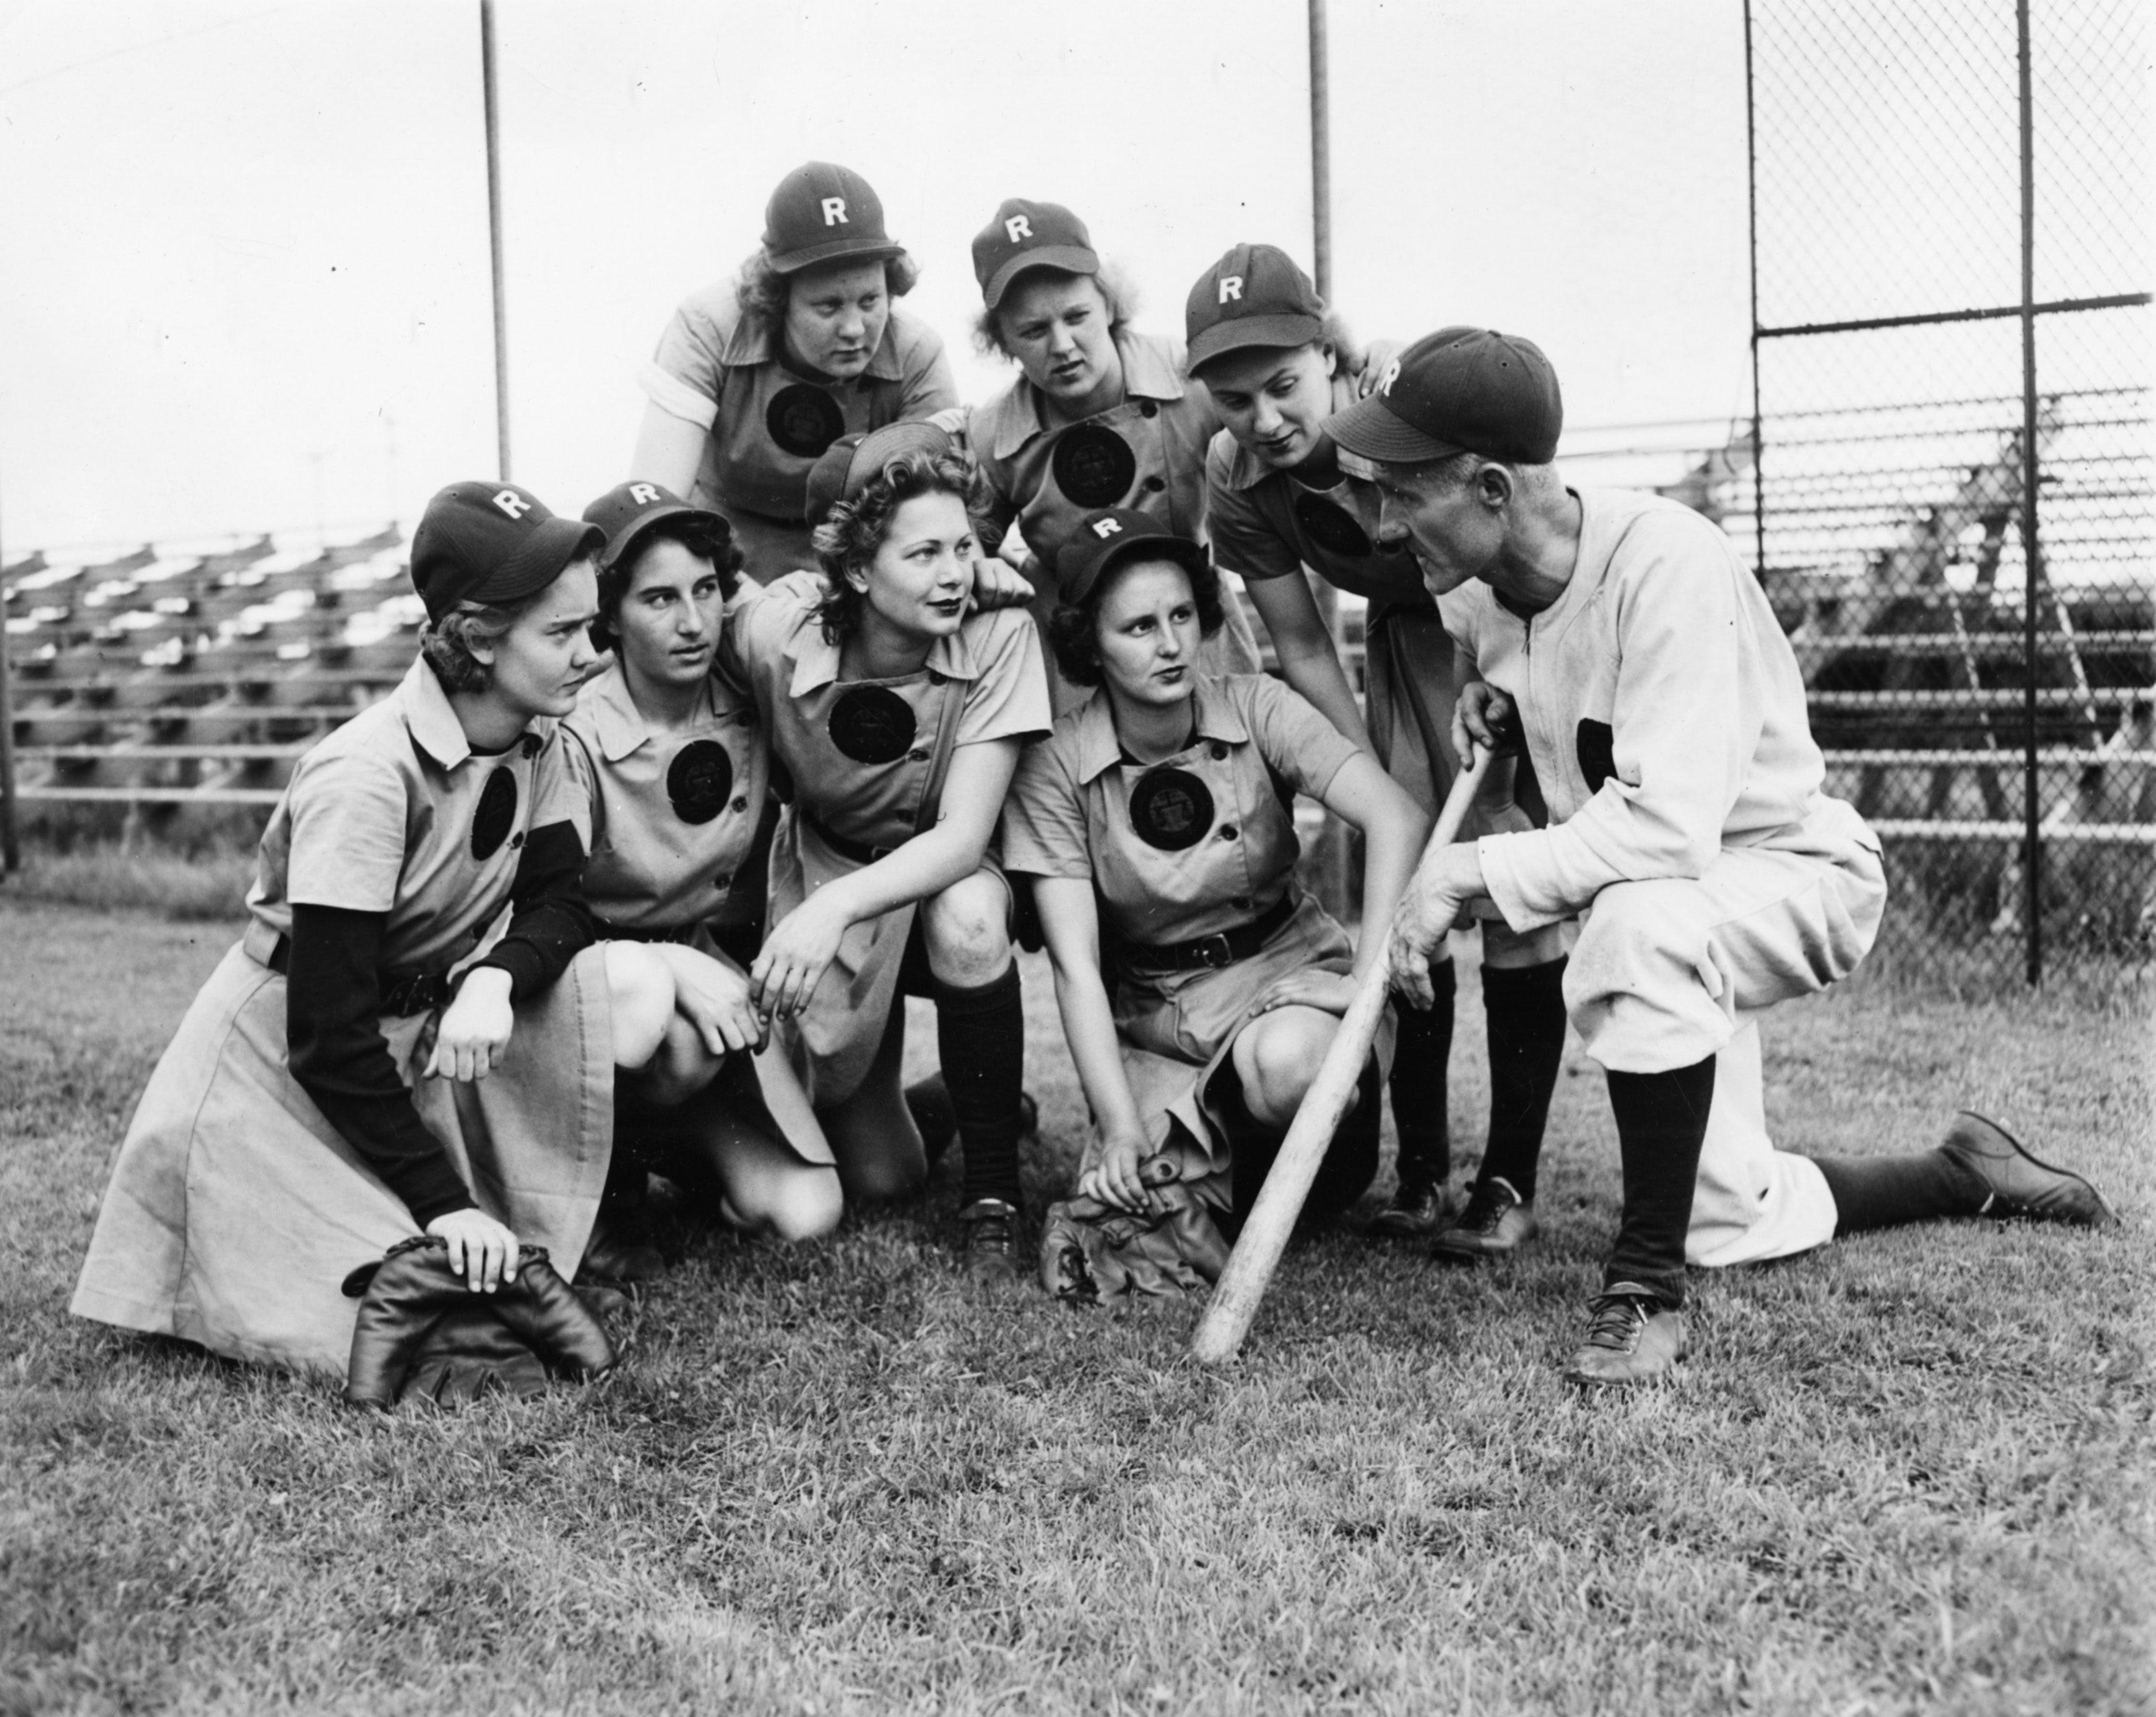 """The Rockford Peaches were featured in the 1992 movie, """"A League of Their Own."""" (Courtesy Midway Village Museum, Rockford, IL)"""